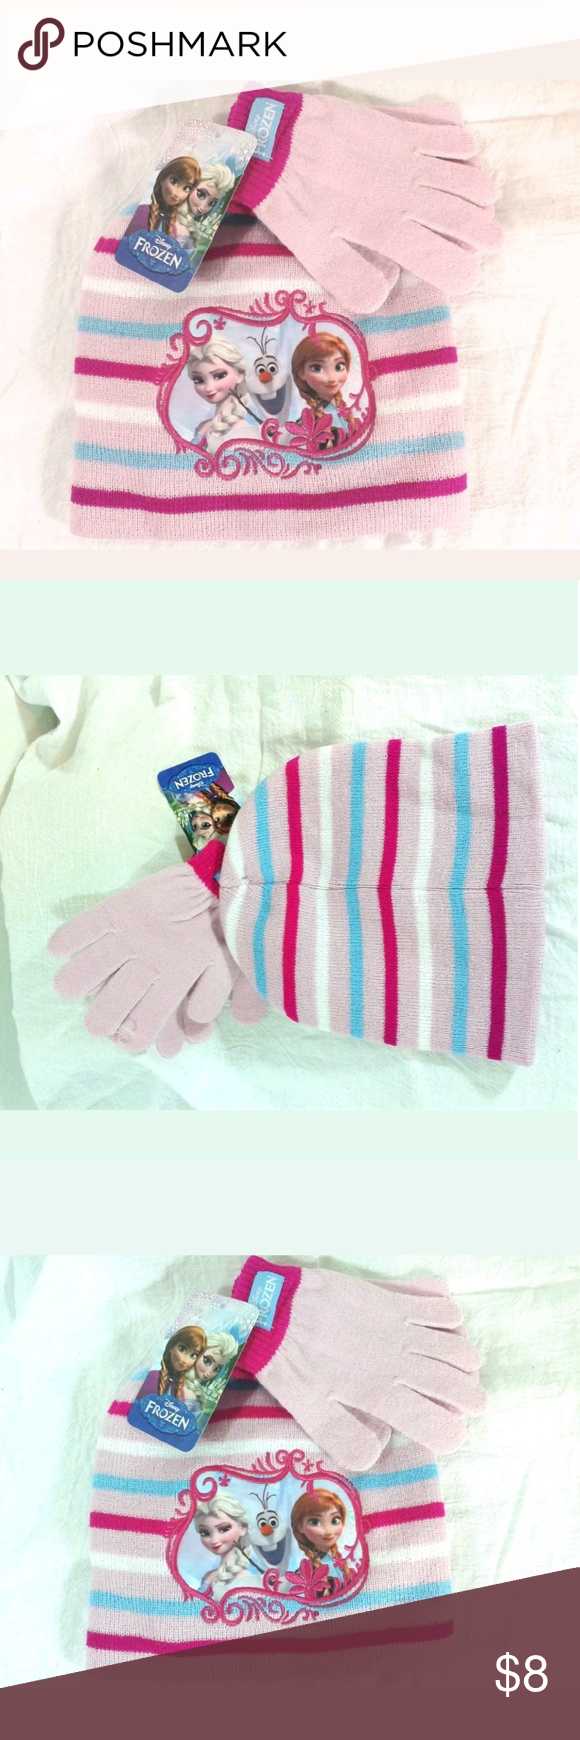 Disney Frozen - Pink Beanie Glove set Small Child Beloved Disney's Frozen - Pink Beanie and Glove set with Elsa Anna and Olaf - NWT - One Size Fits Most - Small Kids Size   100% Acrylic - See Care Tag Photo for Washing Instructions. Adorable!  If you have any questions or concerns about your item(s) upon receipt, please contact me so that I may address them - Your satisfaction is my HIGHEST priority! Disney Accessories Hats